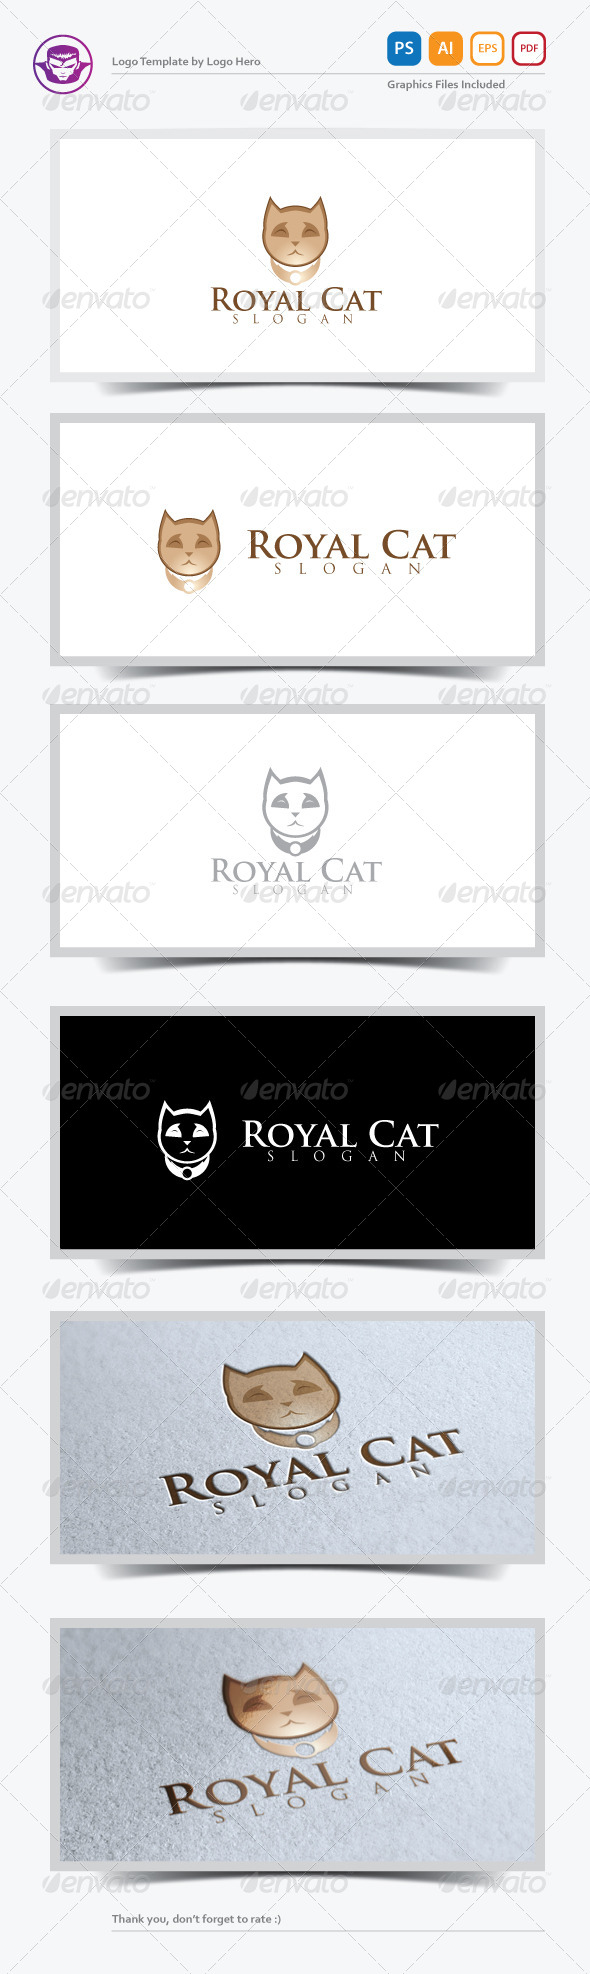 GraphicRiver Royal Cat Logo Template 5220867